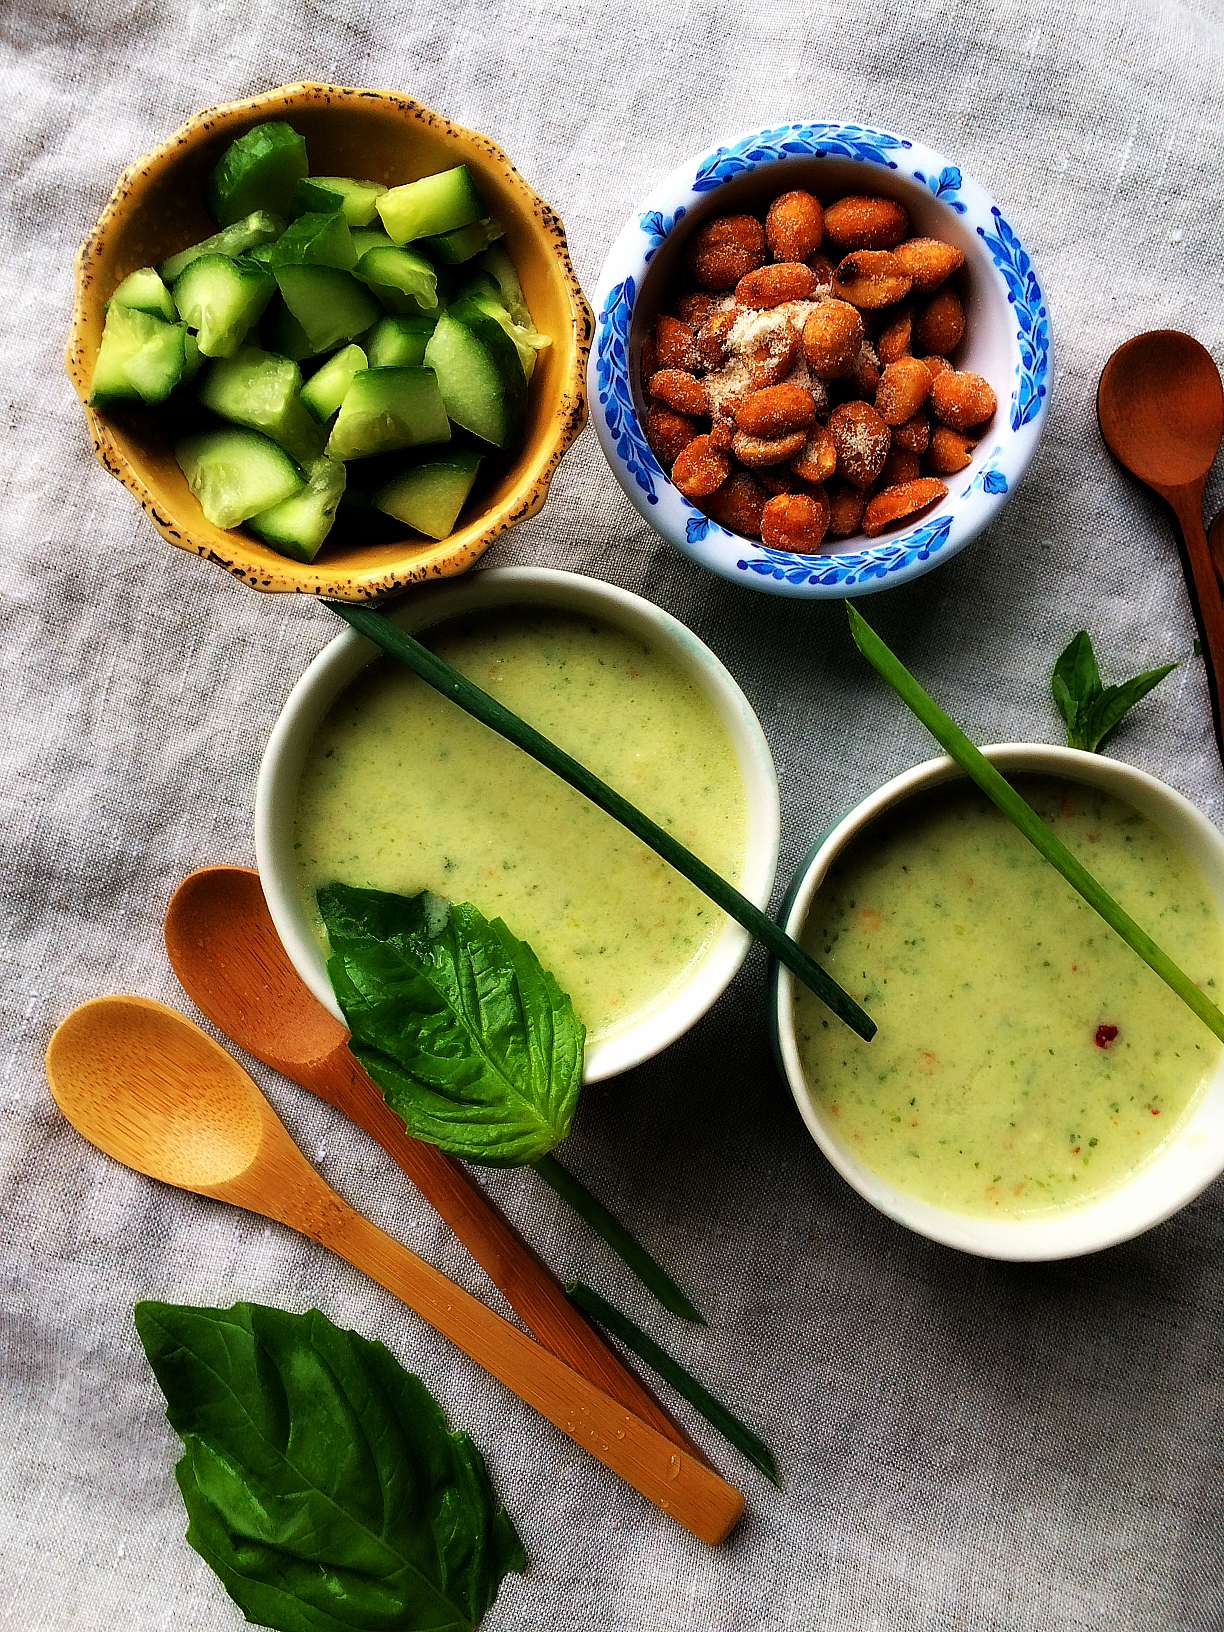 © Cold Cucumber Soup by Dena T Bray